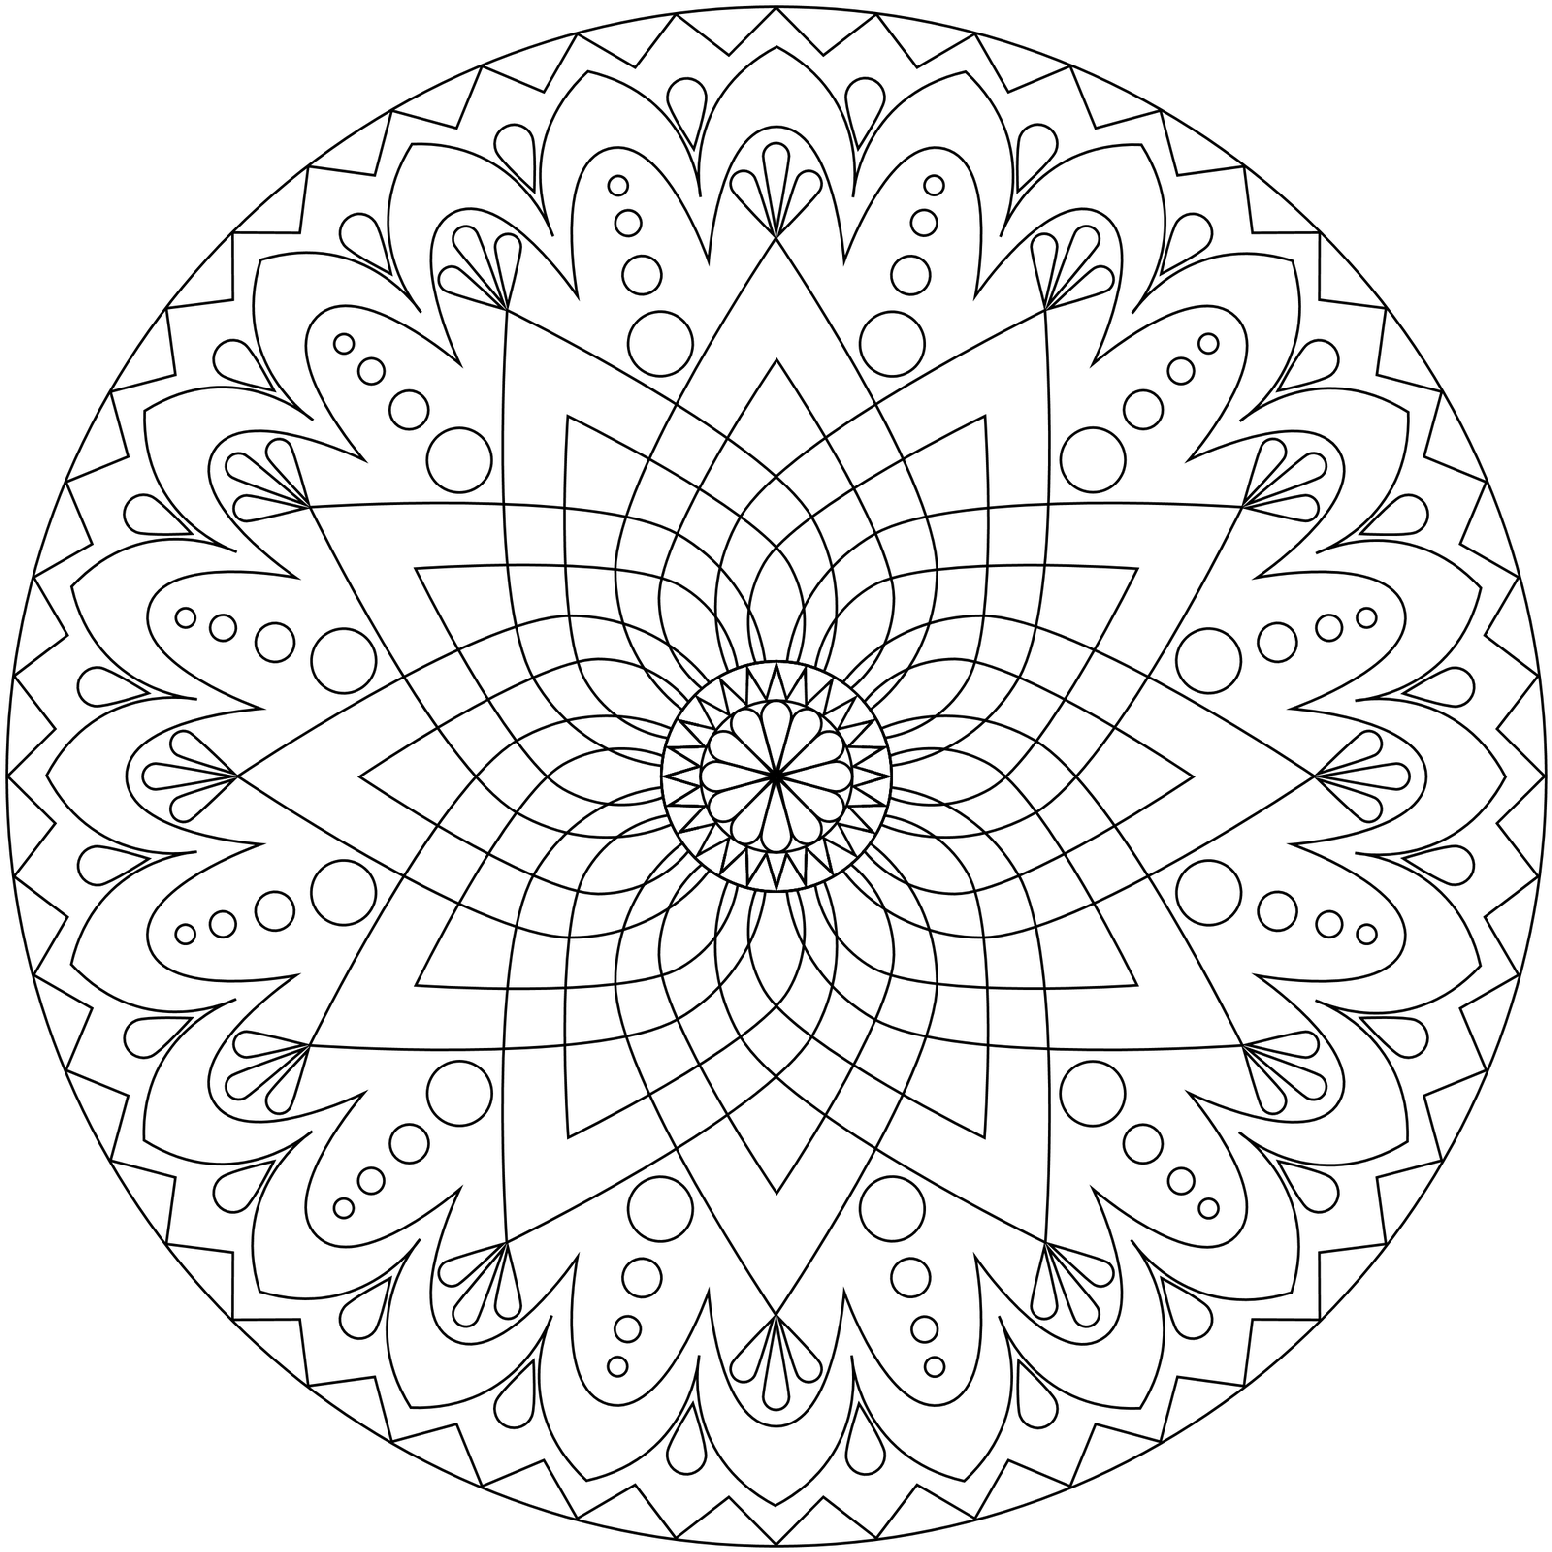 Free Printable Mandala Coloring Pages For Adults 78 With Free